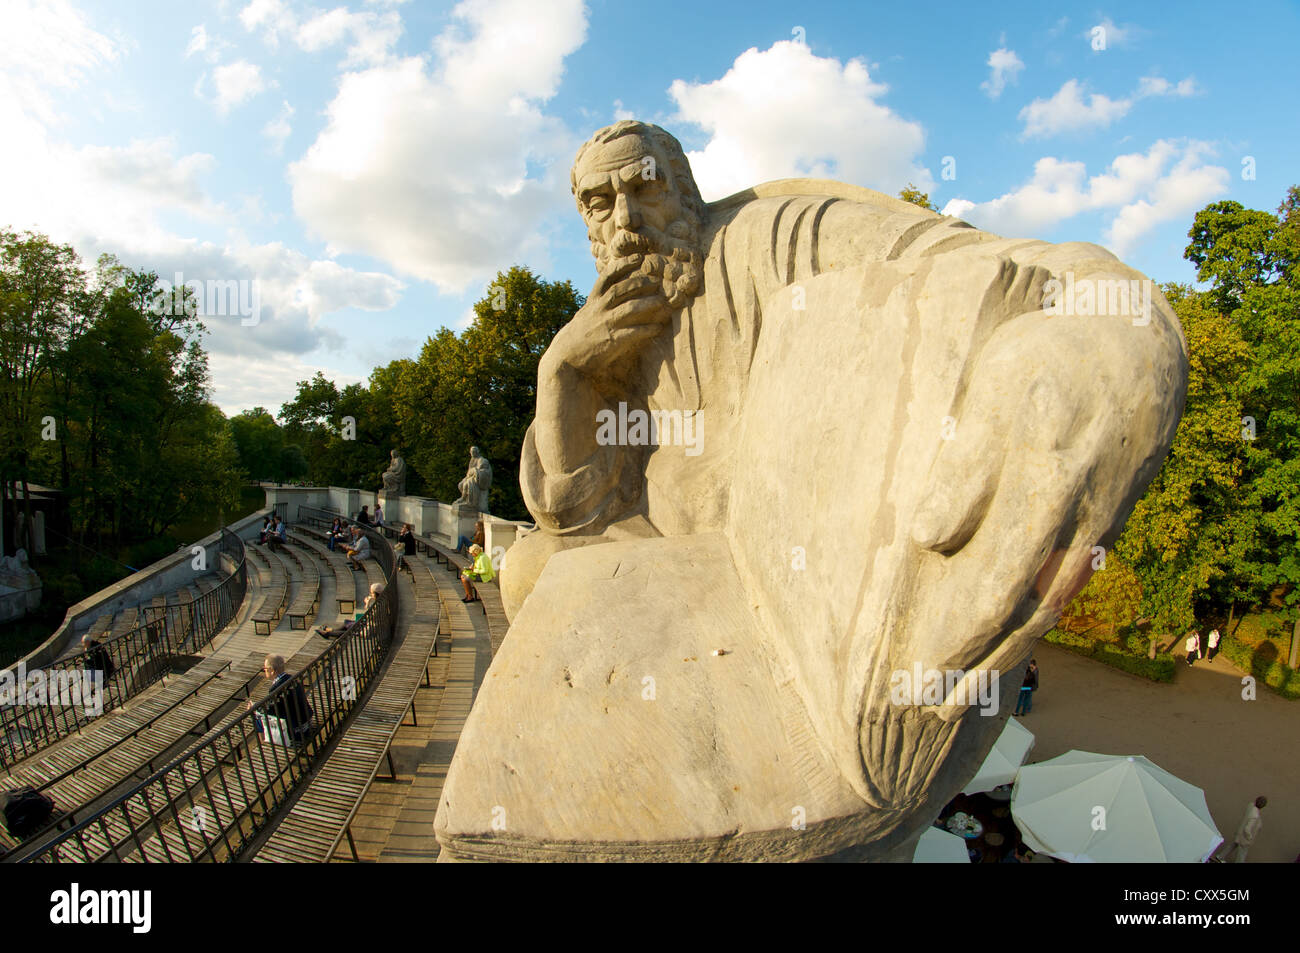 Thinker's statue on top of classical amphitheater in Royal Lazienki Park, Warsaw, Poland - Stock Image